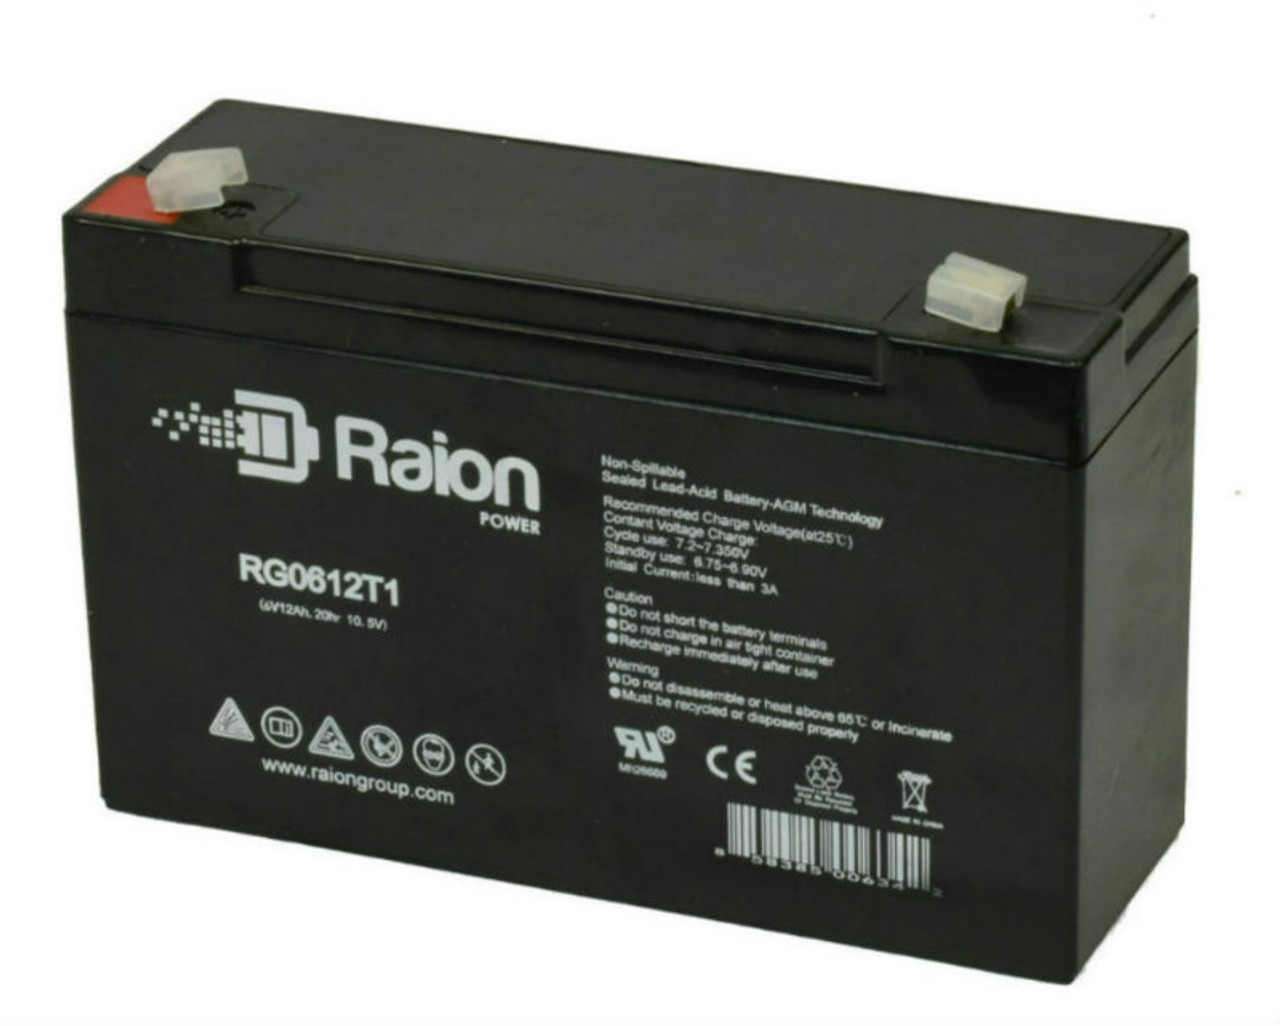 Raion Power RG06120T1 Replacement Battery Pack for Sure-Lites SLHC12 emergency light